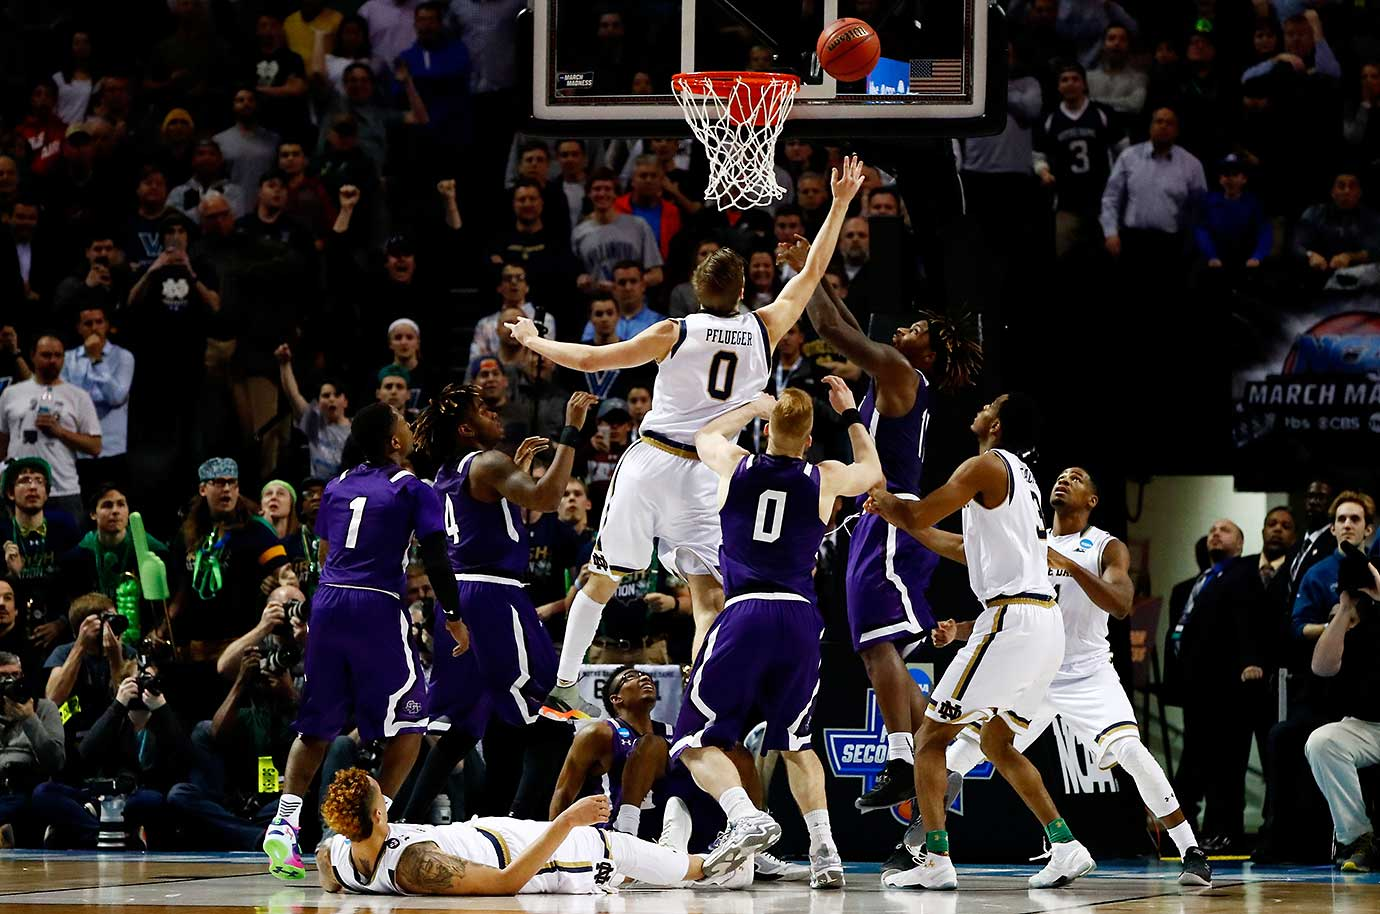 Rex Pflueger's tip-in was his only basket of the game and it pushed Notre Dame into the second weekend of the tournament in consecutive years for the first time since it went six straight years from 1974 to '79.